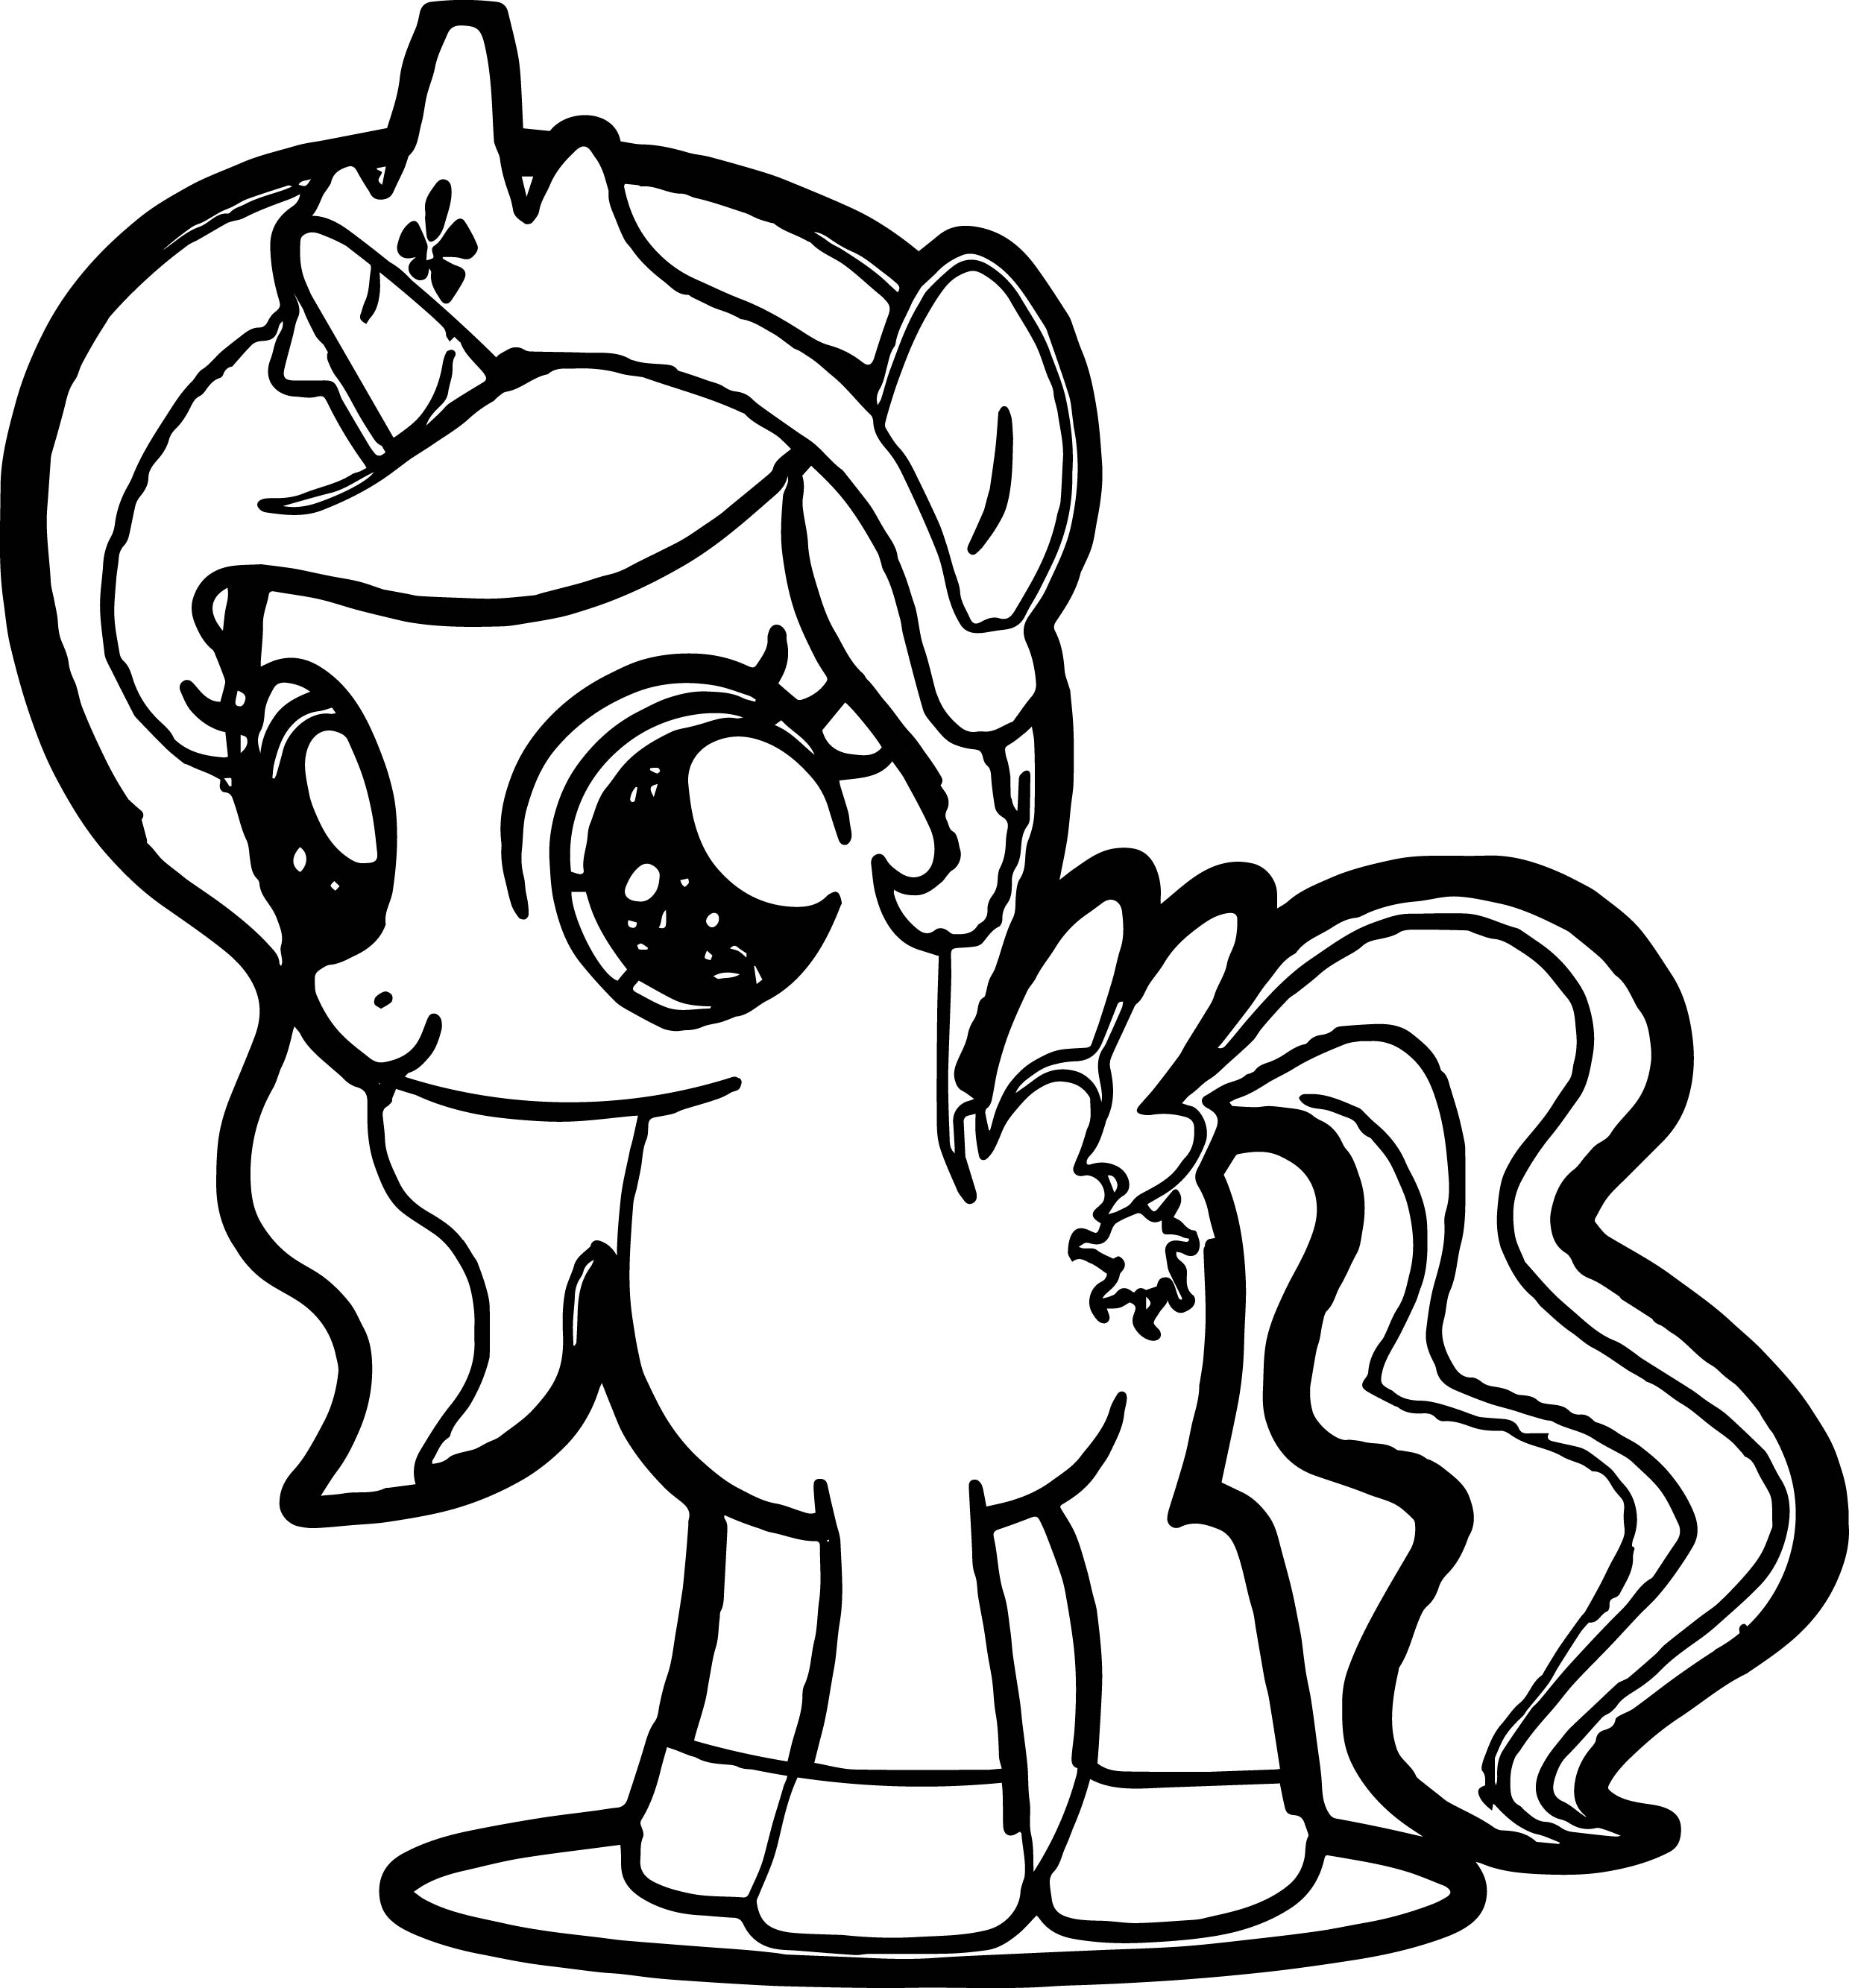 mlp coloring my little pony the movie coloring pages to download and mlp coloring